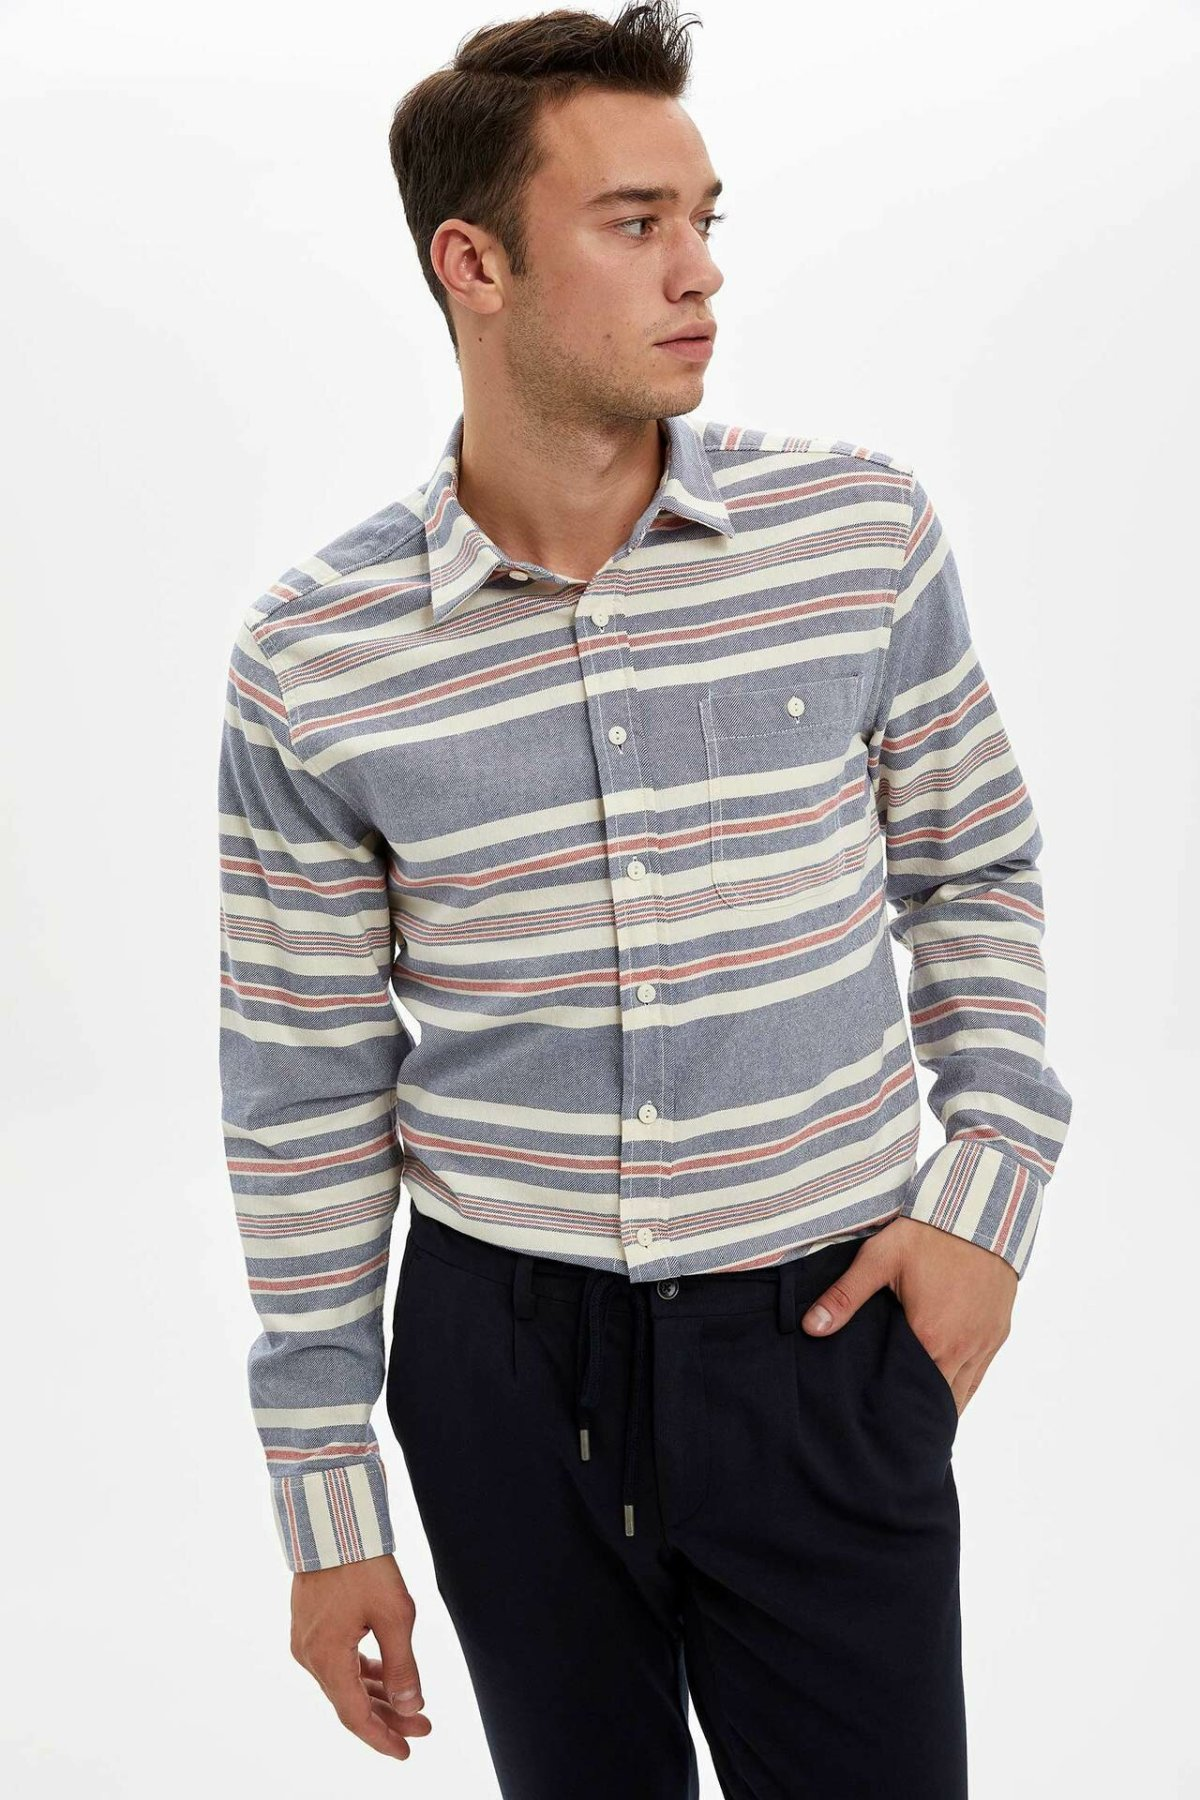 DeFacto Fashion Lapel Collar Men Casual Striped Shirt Long Sleeve Simple Pockets Shirts Male Top Shirt-K6551AZ19AU